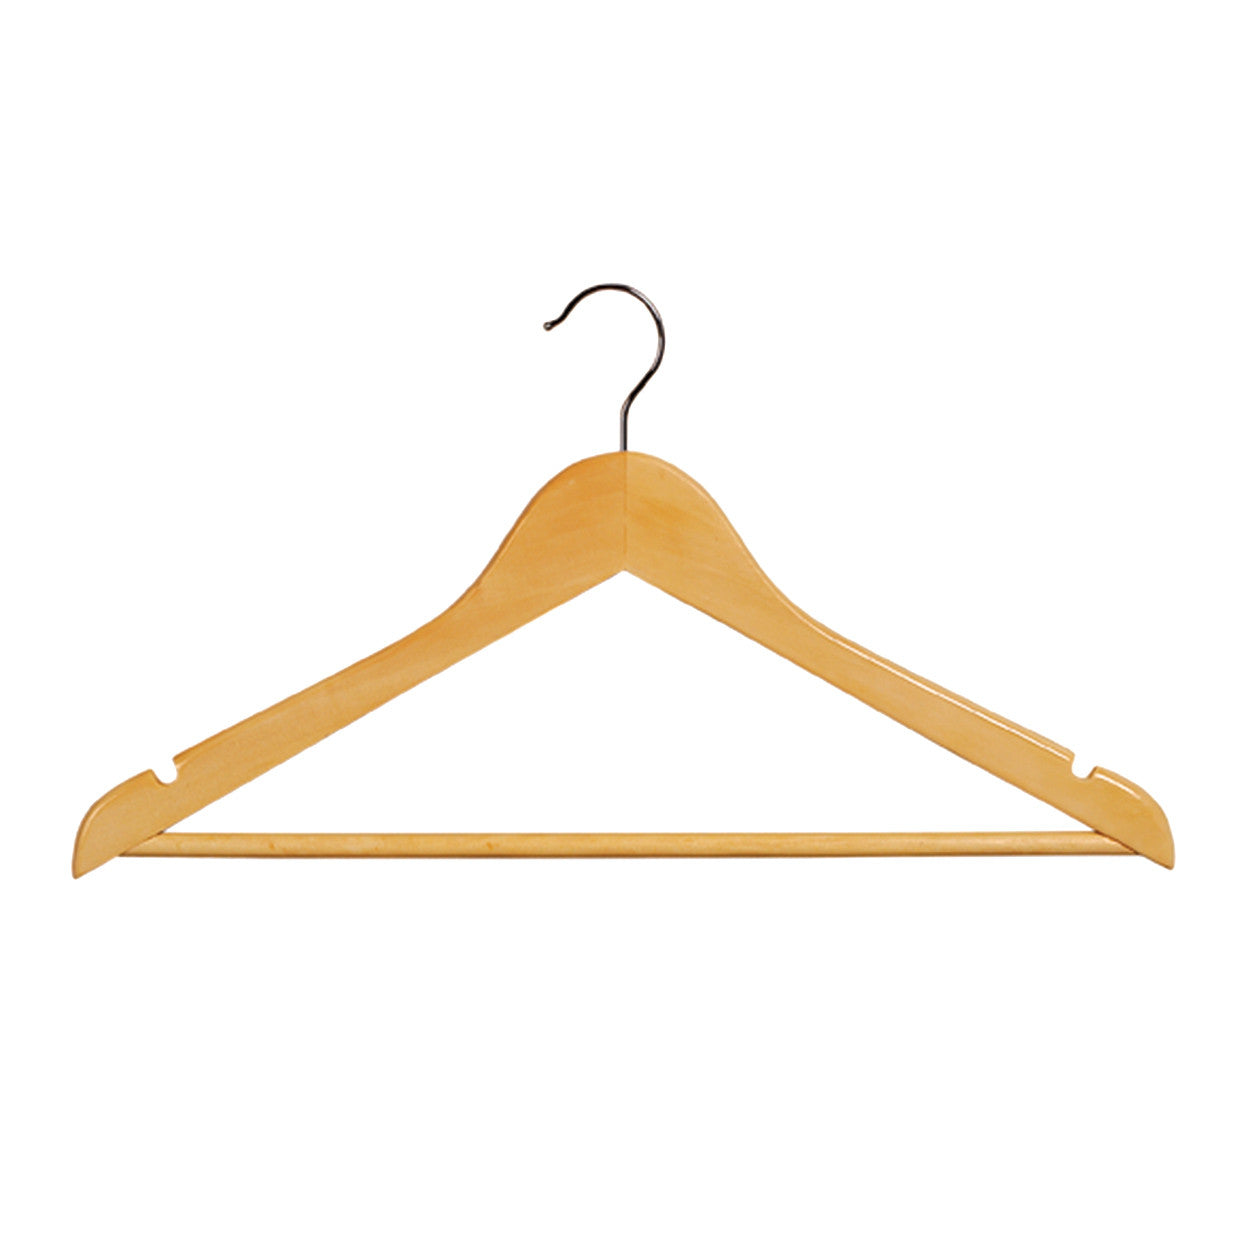 Beech Wooden hanger slimline flat with notches & rail 440 W x 10 mm Thick (Box of 100) H2640BH-100